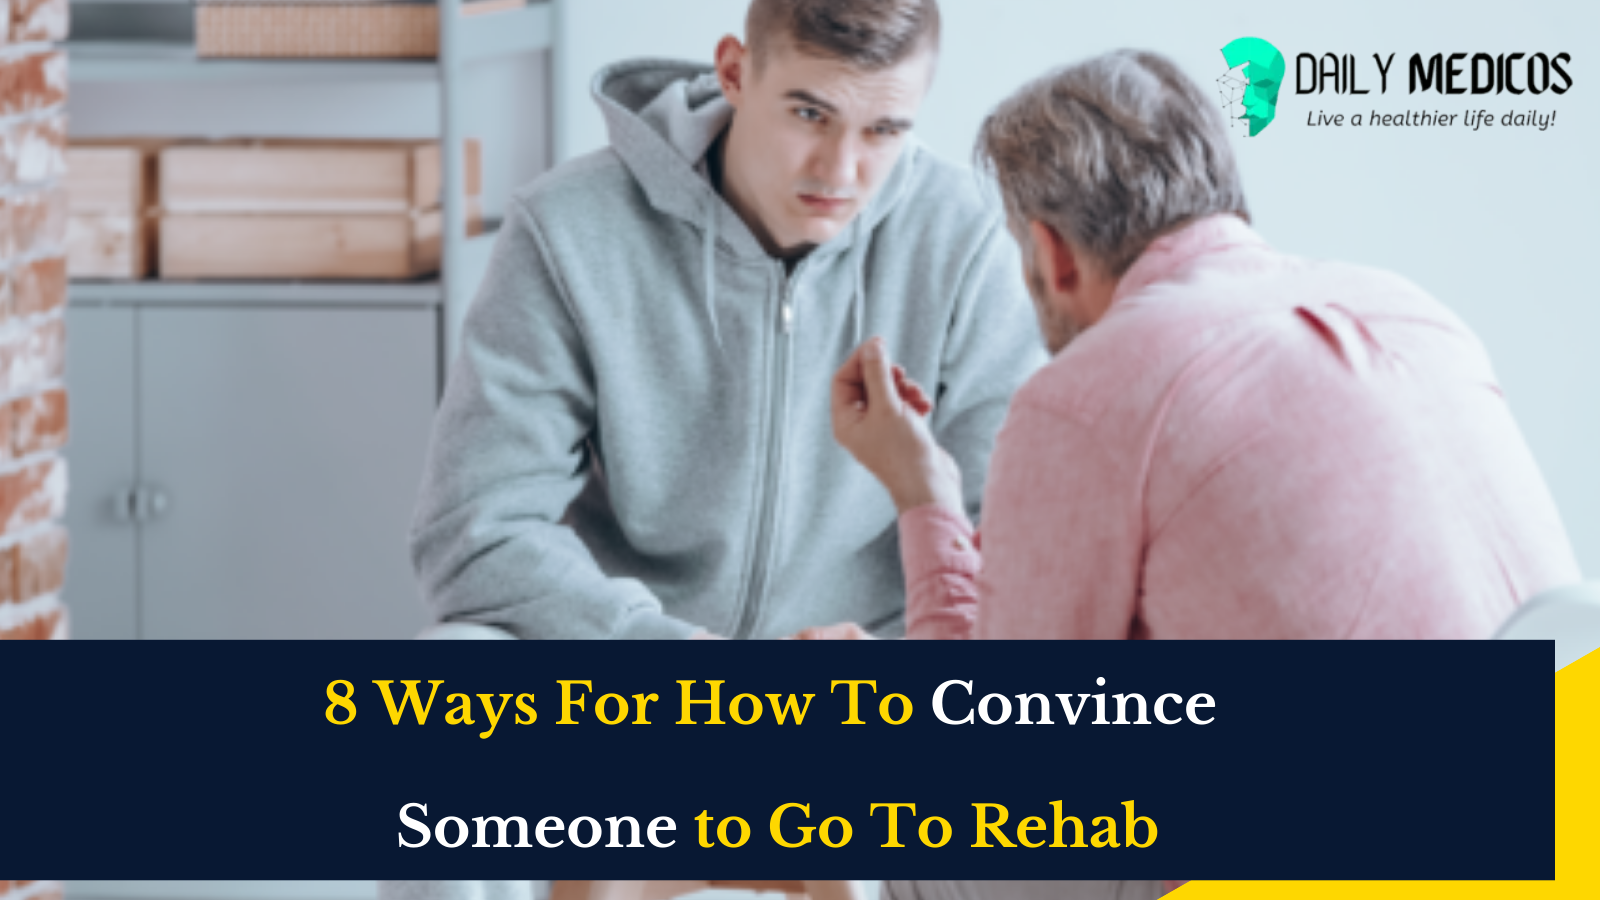 8 Ways For How To Convince Someone to Go To Rehab 16 - Daily Medicos